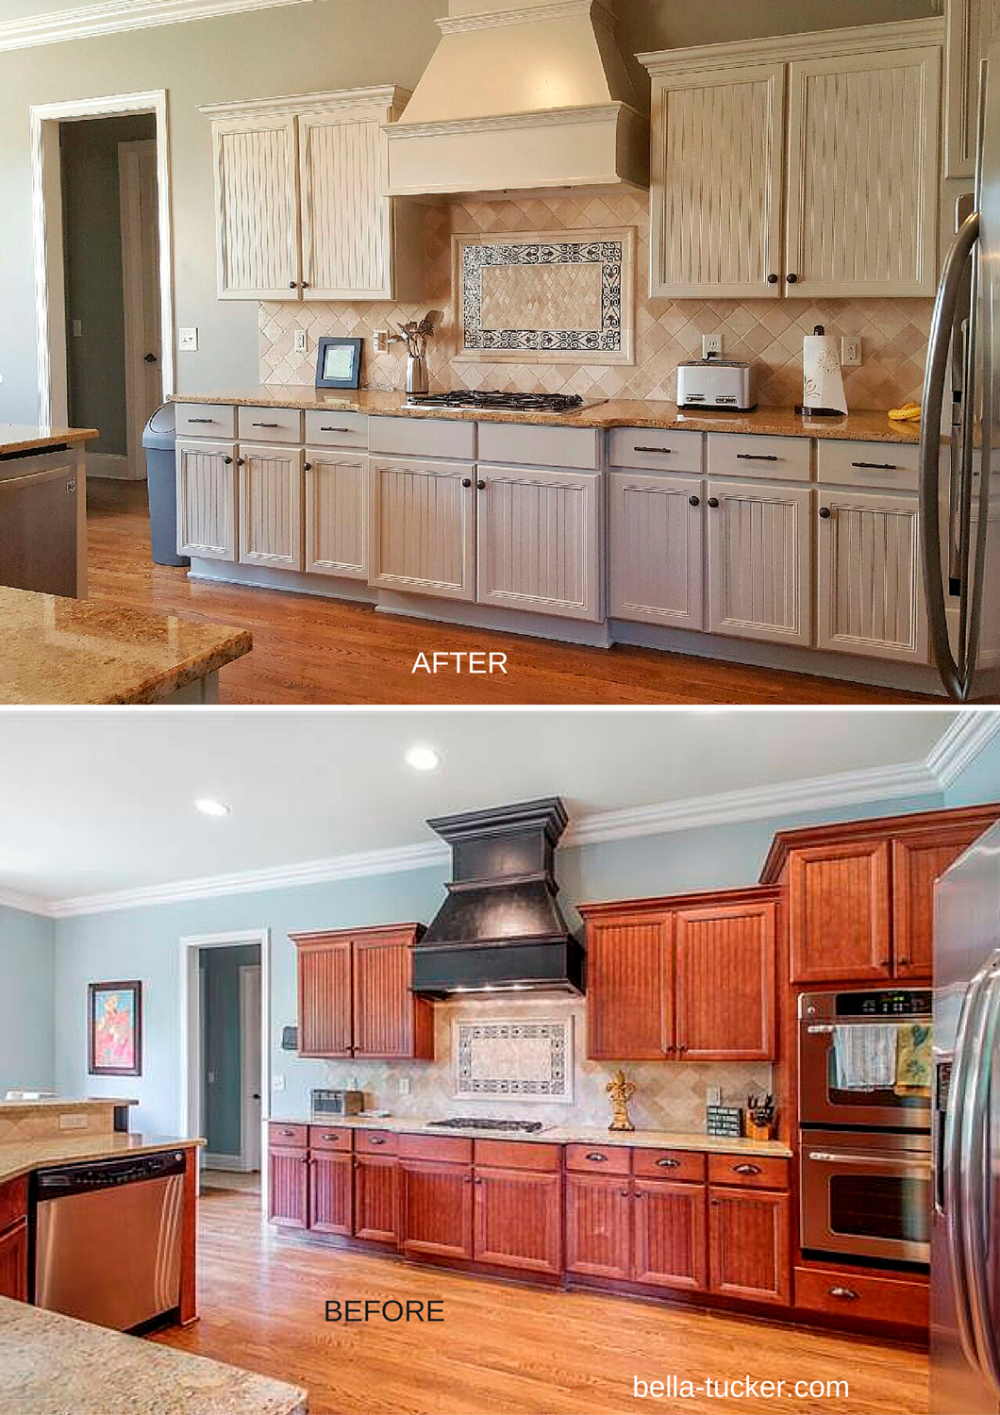 Kitchen Cabinets Nashville Painted Cabinets Nashville TN Before and After Photos | Kitchen